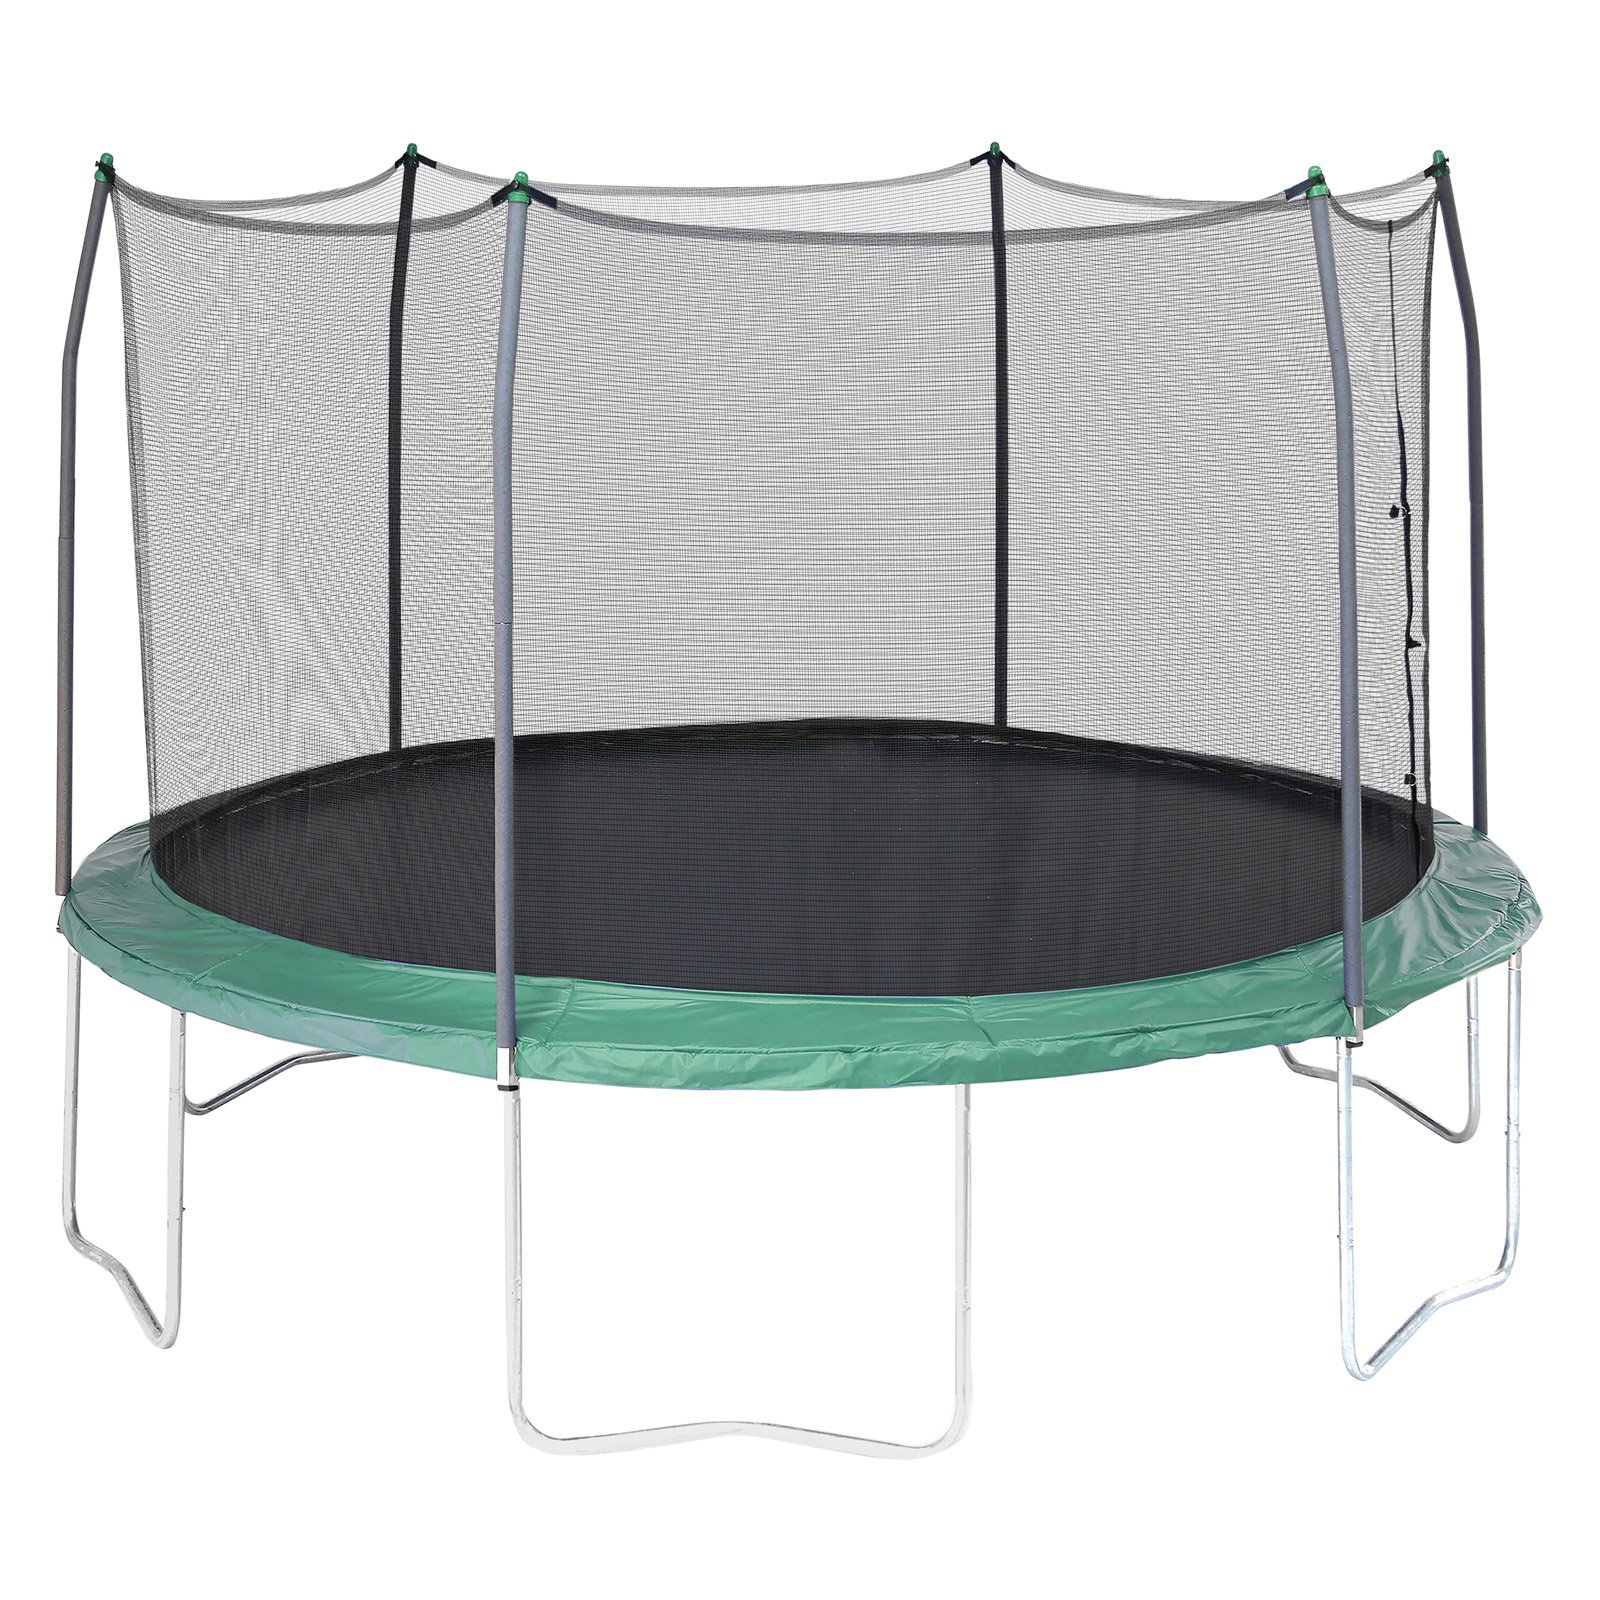 Skywalker Trampolines 12 Foot Trampoline With Safety Enclosure Green Com